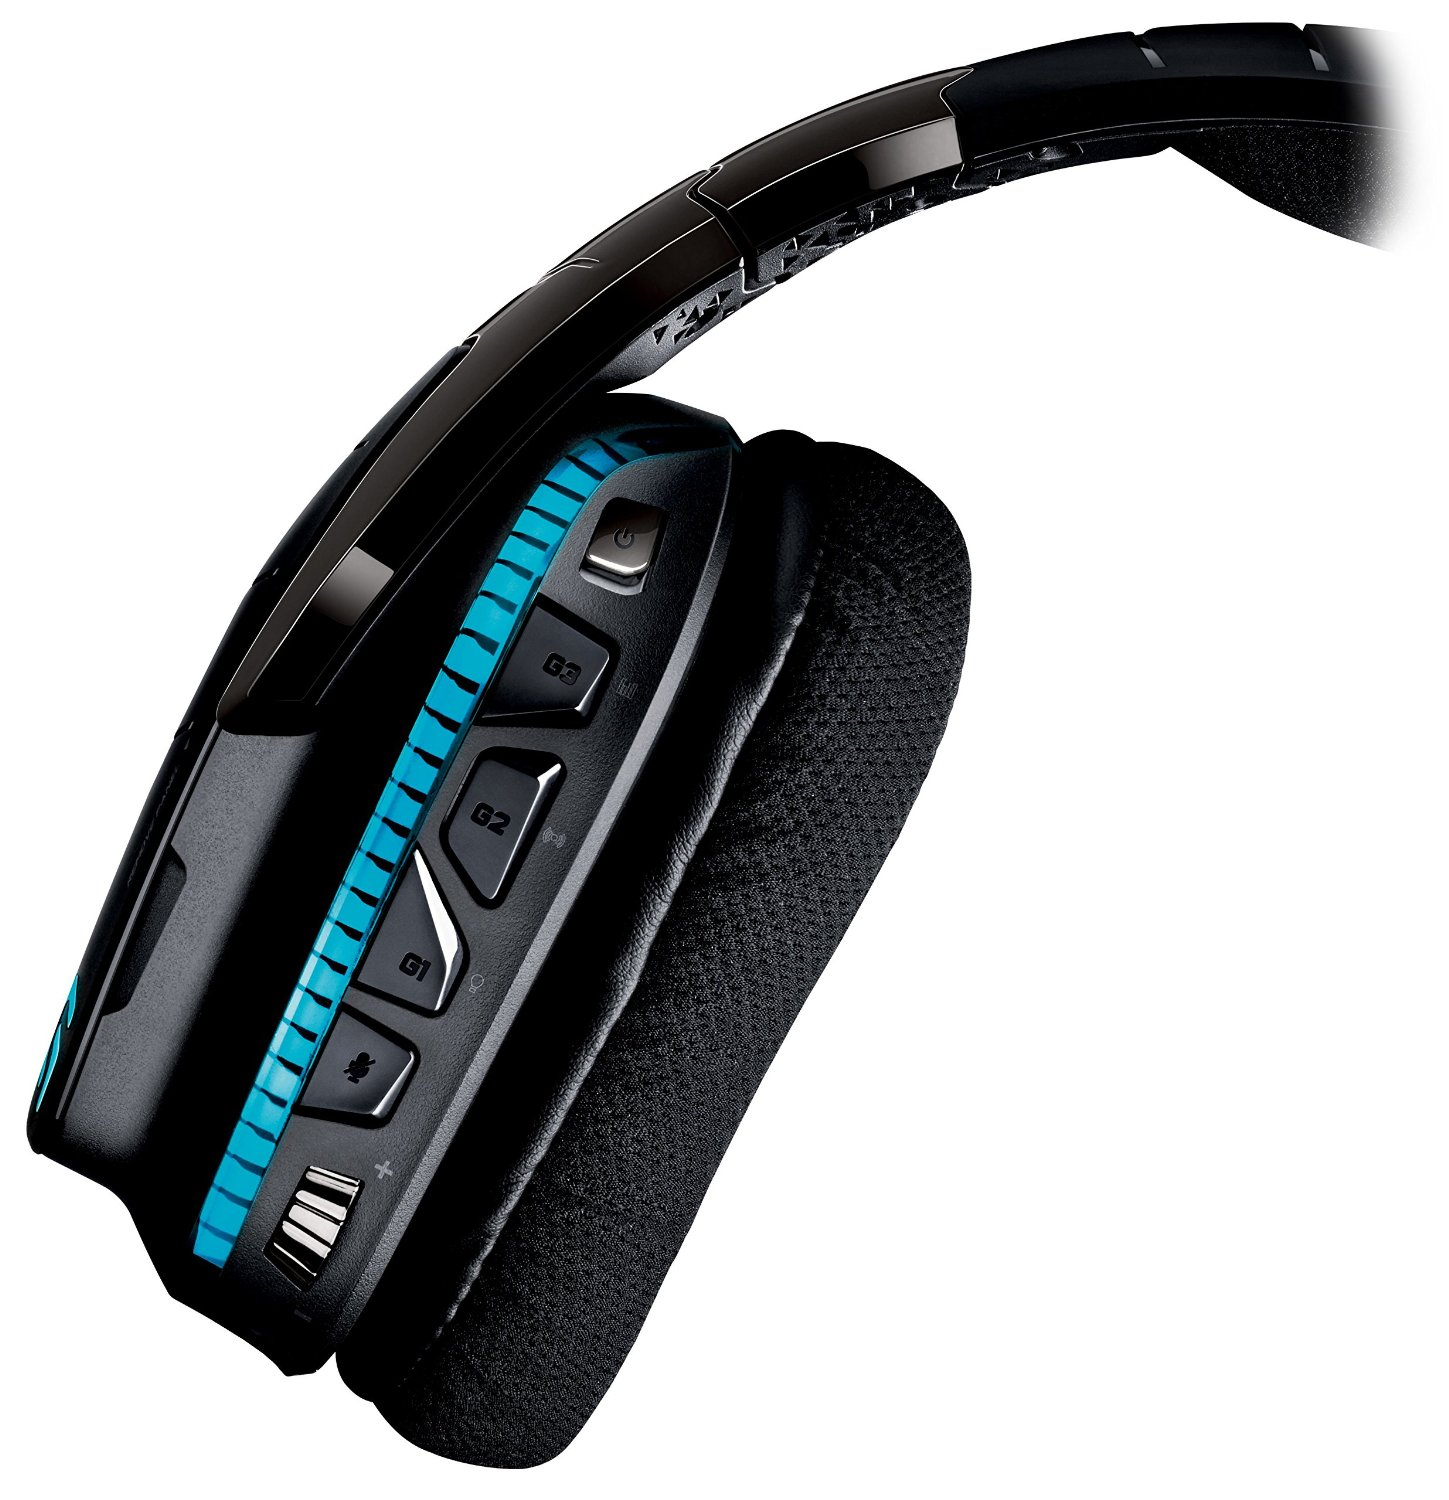 ee81c6892bd Logitech G933 Artemis Spectrum Wireless 7.1 Surround Gaming Headset-in  Mouse Pads from Computer & Office on Aliexpress.com | Alibaba Group